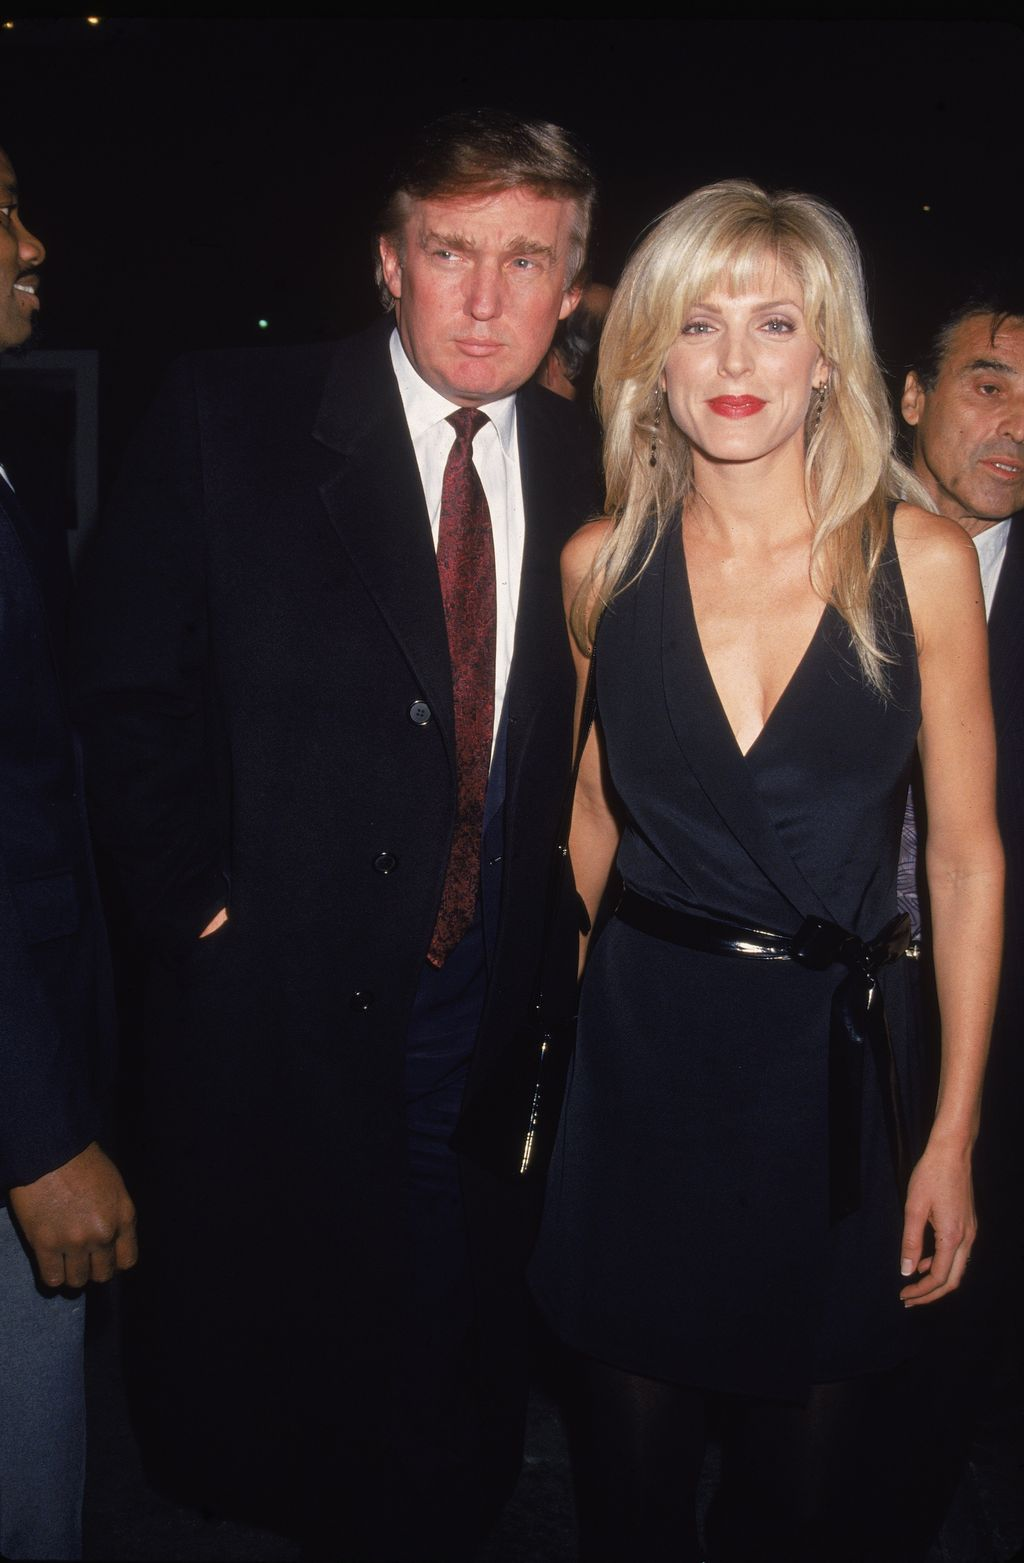 Donald Trump and Marla Maples at the premiere of the film,